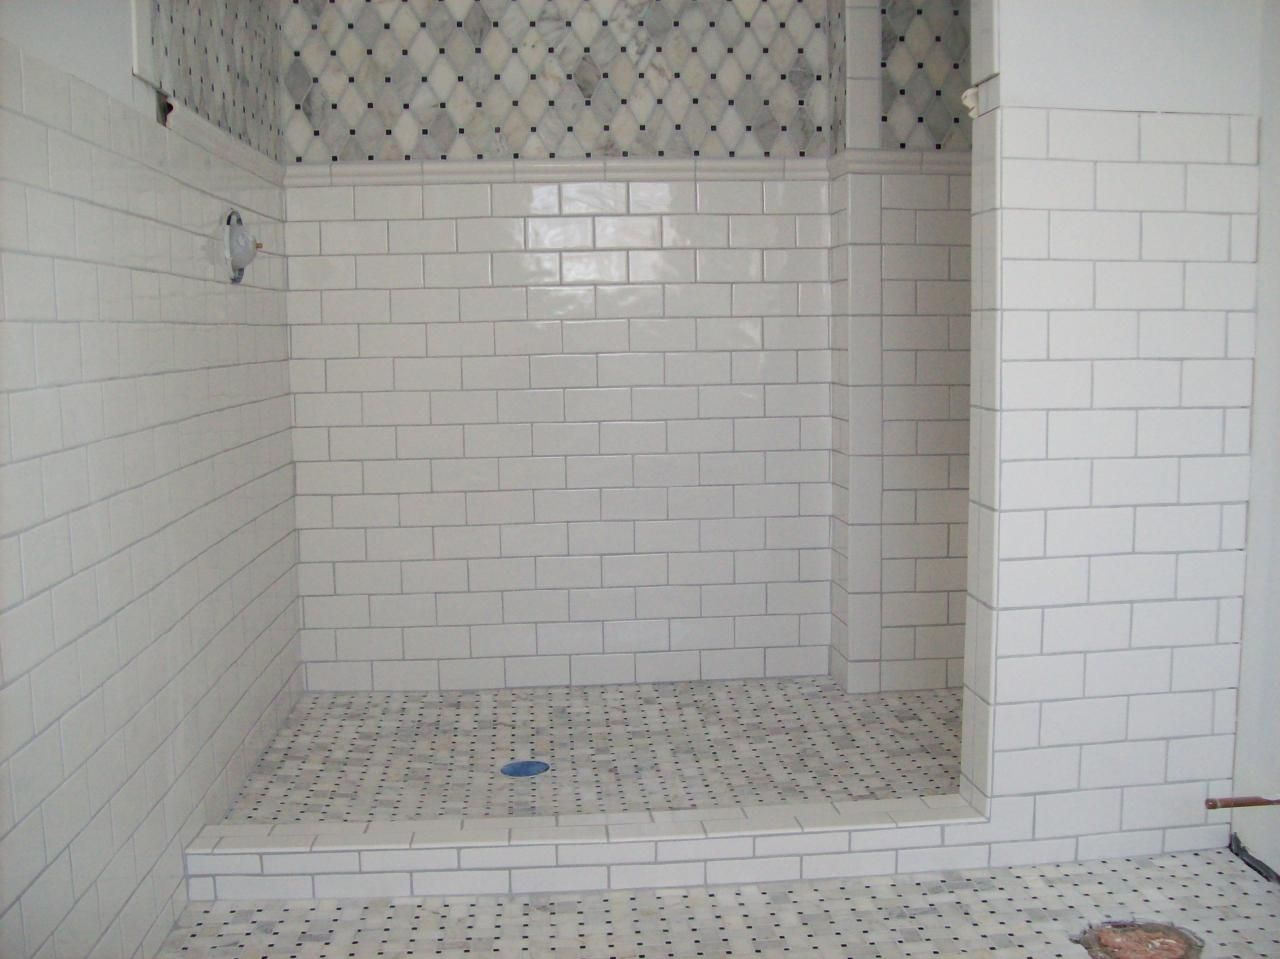 Base For Bathroom Floor Tiles : Marble tile shower floor with ceramic subway on the